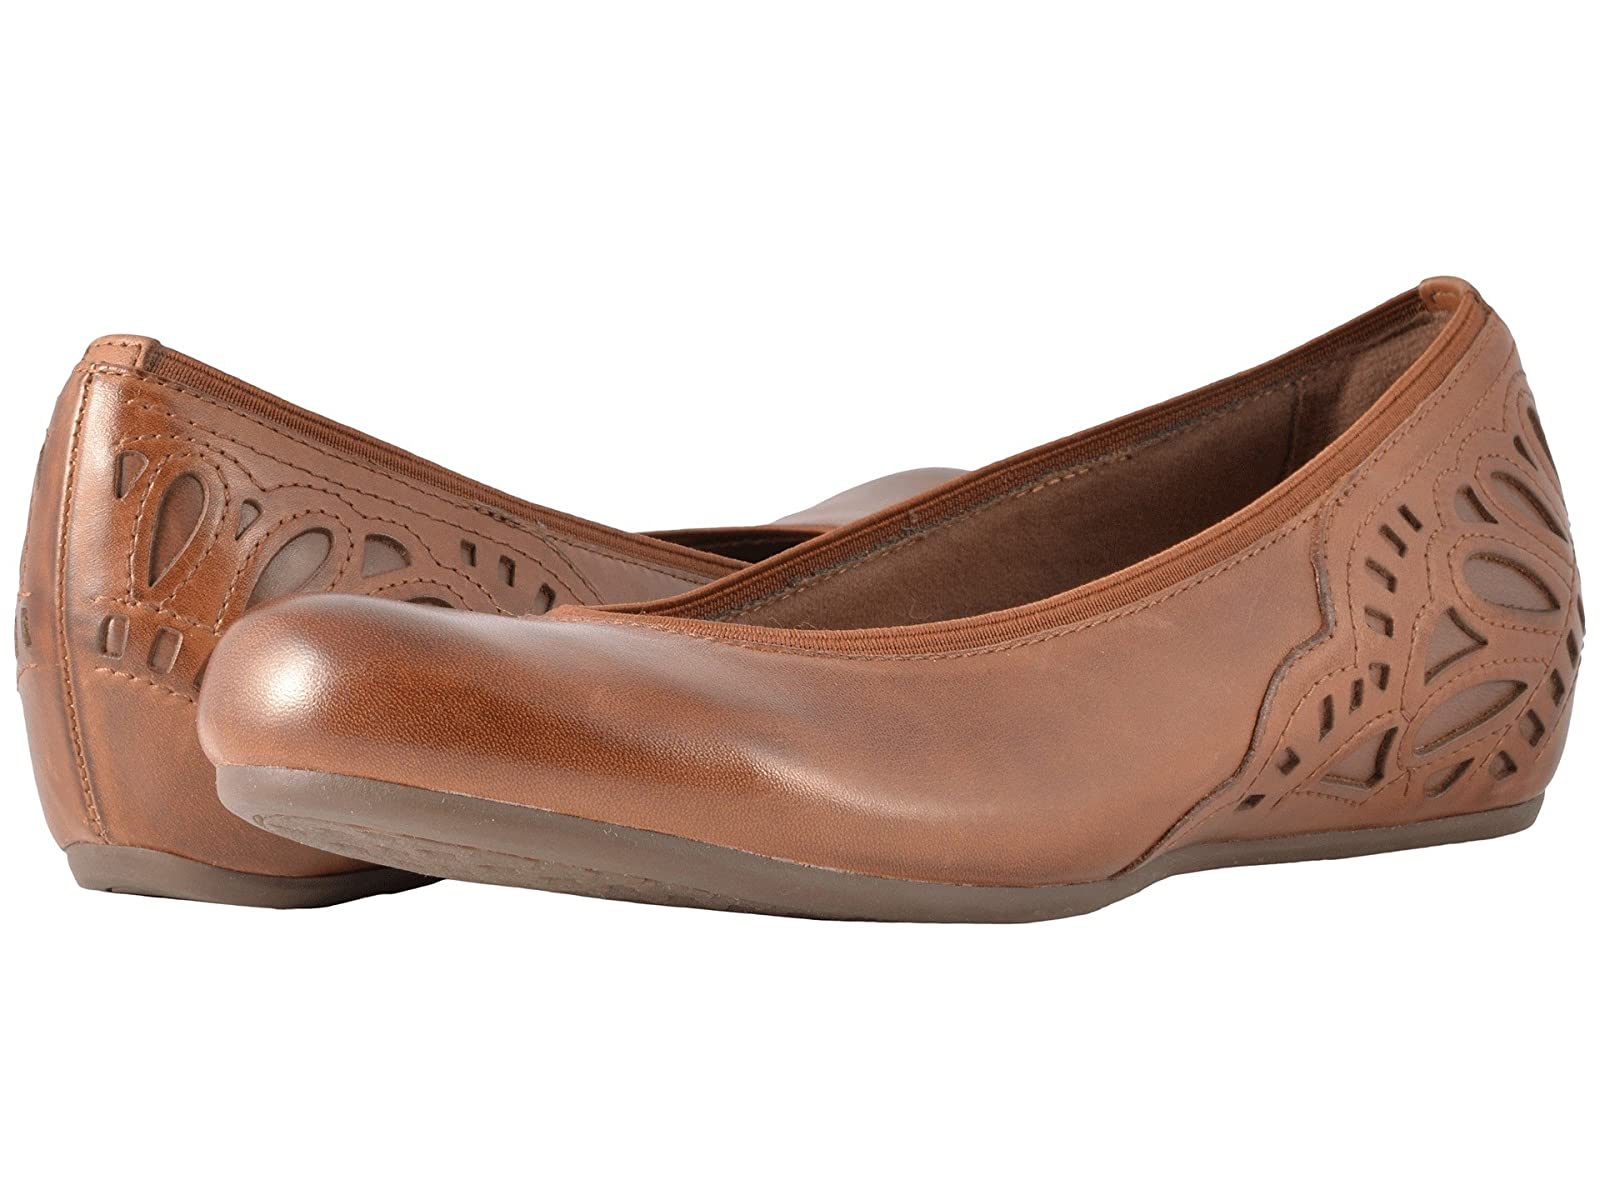 Rockport Hill Cobb Hill Collection Cobb Hill Rockport Sharleen Pump - Highlighted style -Men/Women f9156c